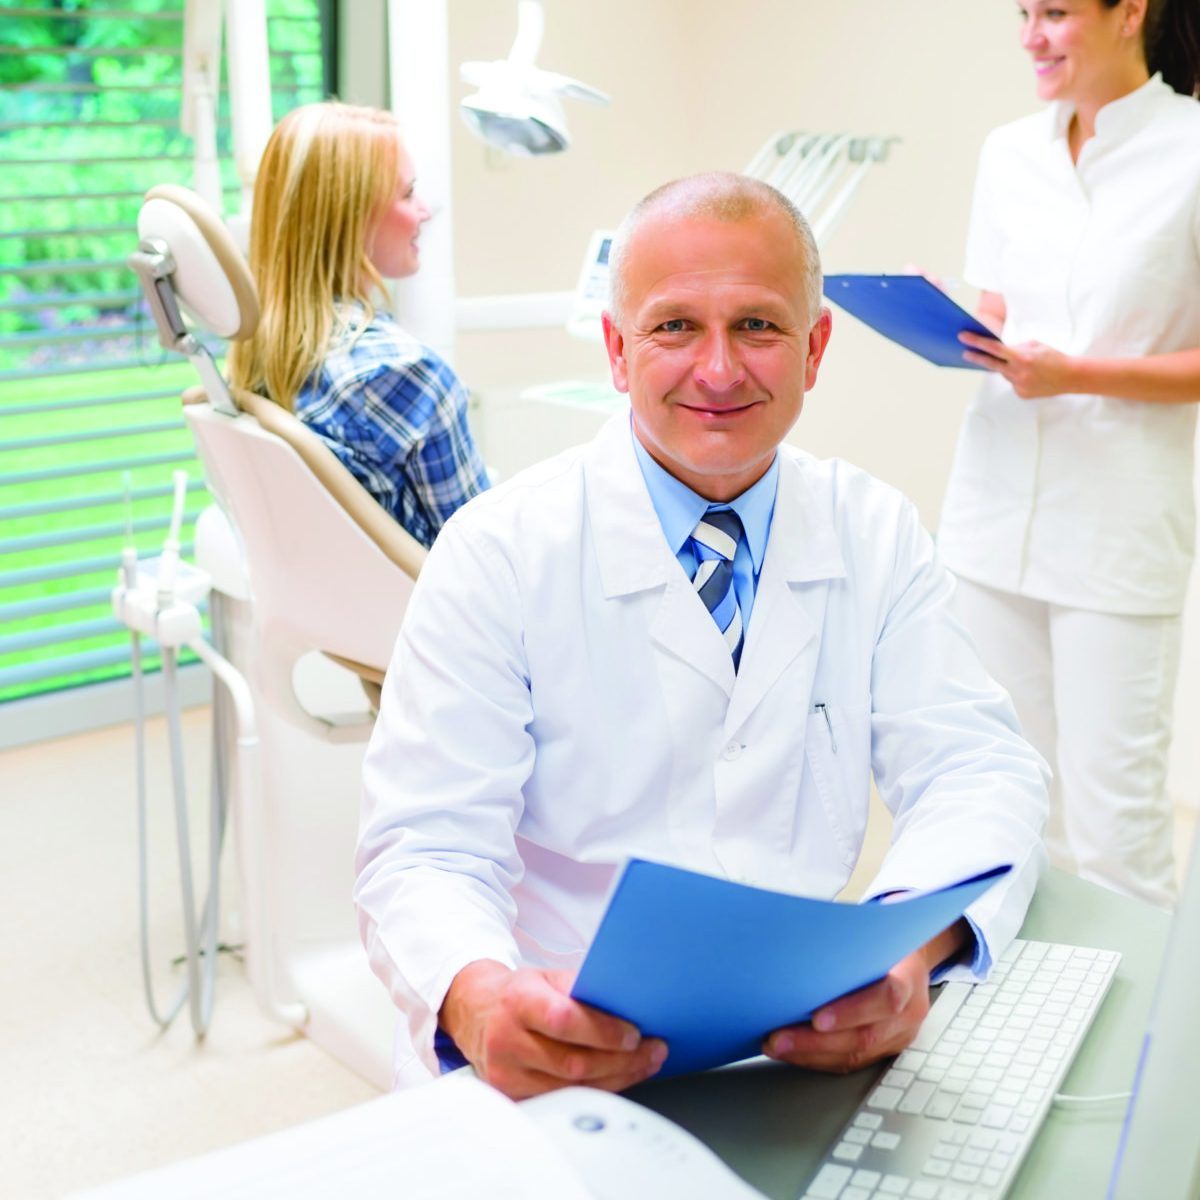 Mature dentist surgeon sitting at dental clinic nurse with patient